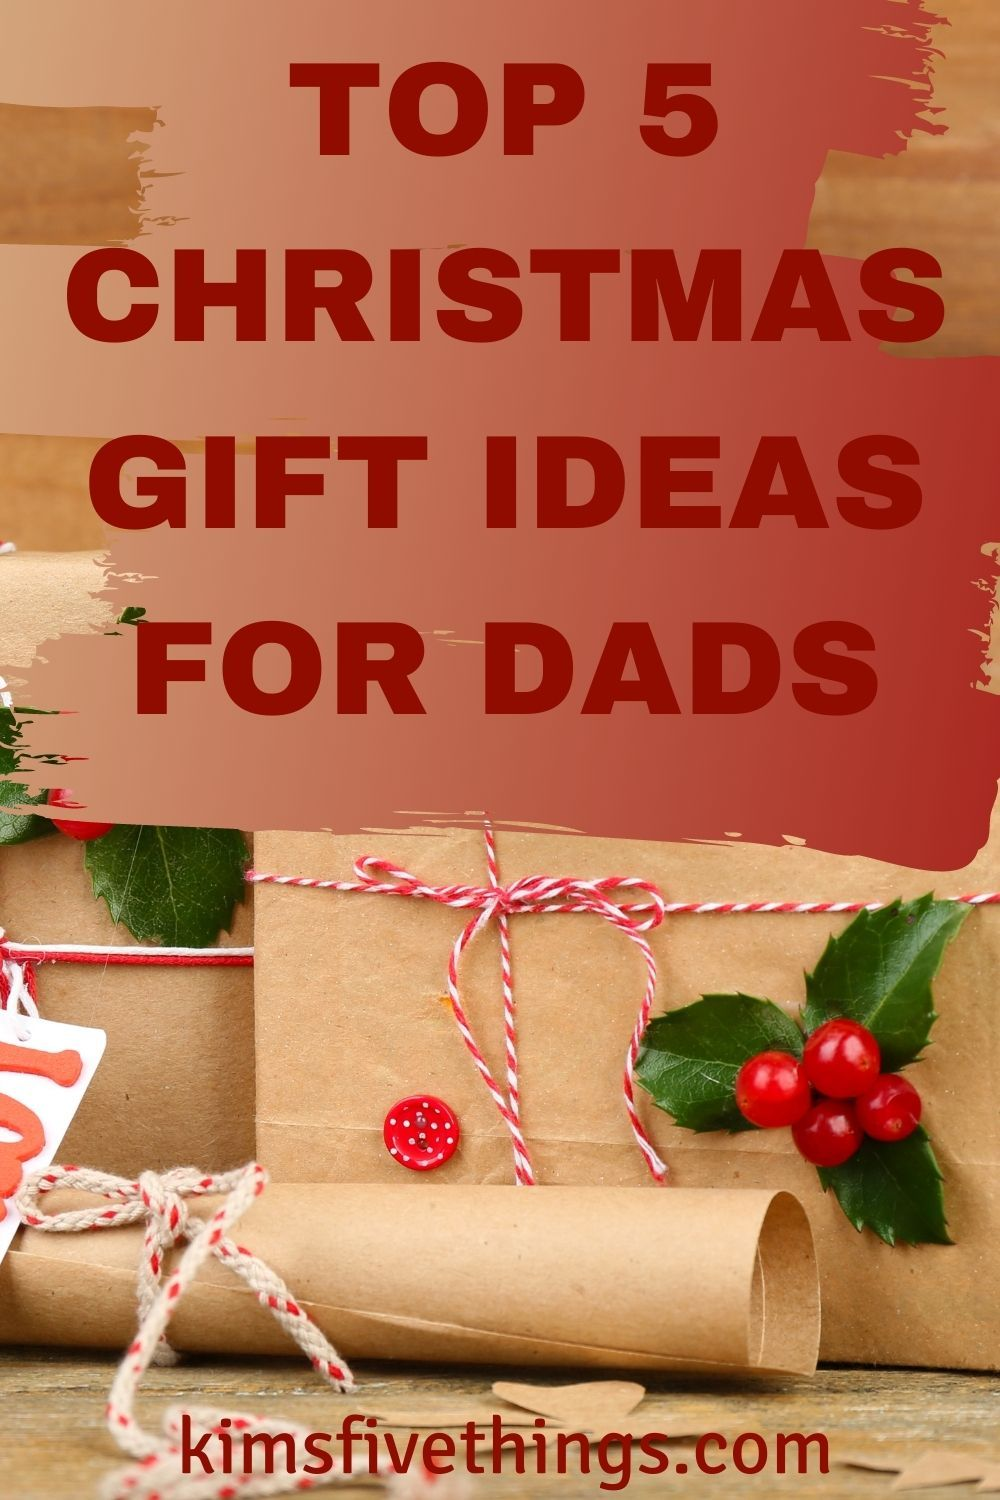 Christmas Gift Ideas For Dad Meaningful Gifts For Dad In 2020 Top 5 Christmas Gifts Best Christmas Presents Dad Christmas